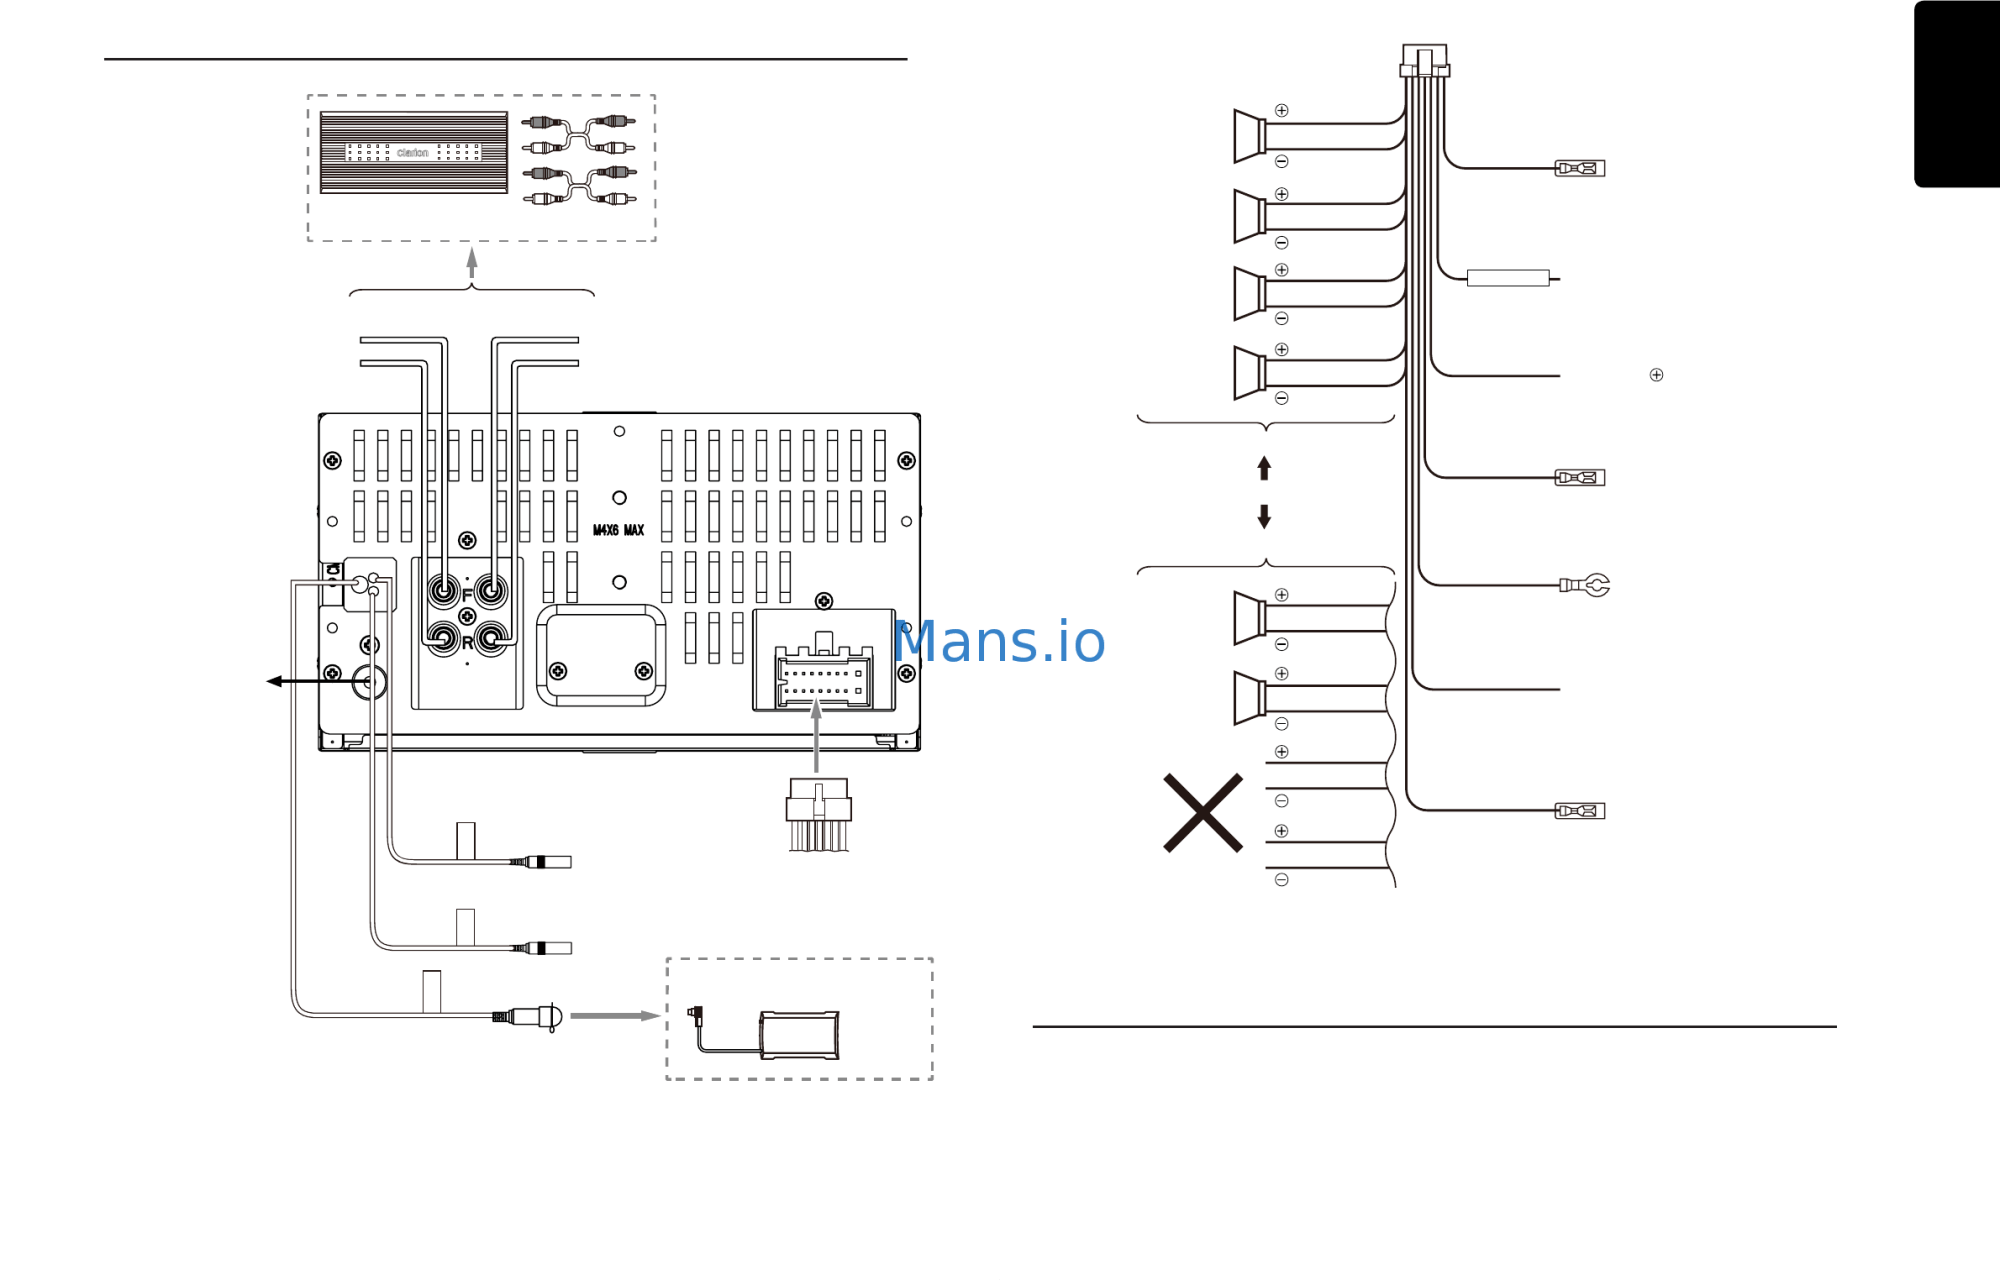 hight resolution of 16 pin wiring diagram clarion dxz655mp images gallery